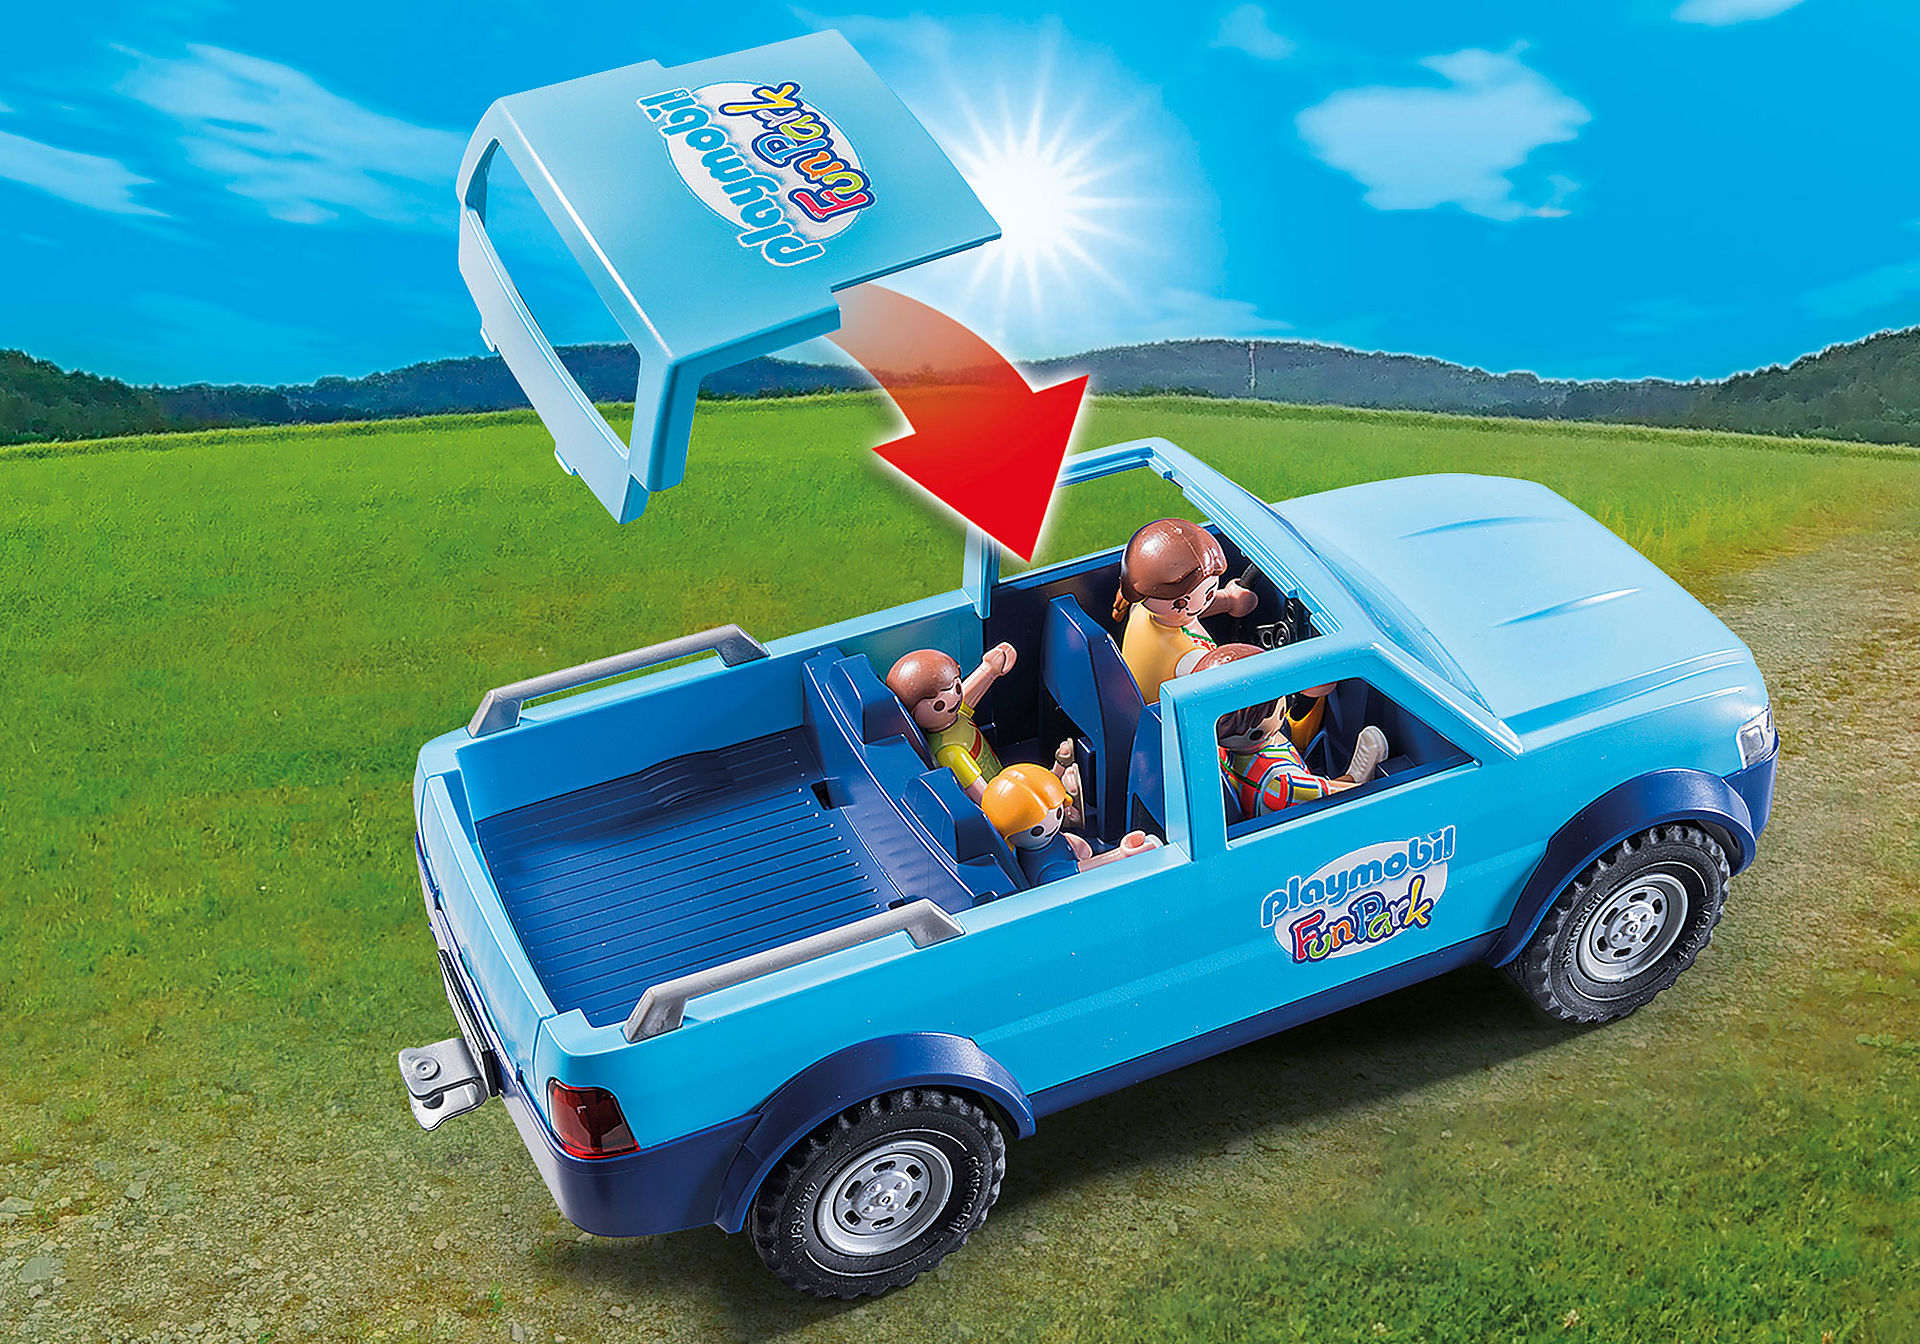 http://media.playmobil.com/i/playmobil/9502_product_extra1/PLAYMOBIL-FunPark Pickup with Camper